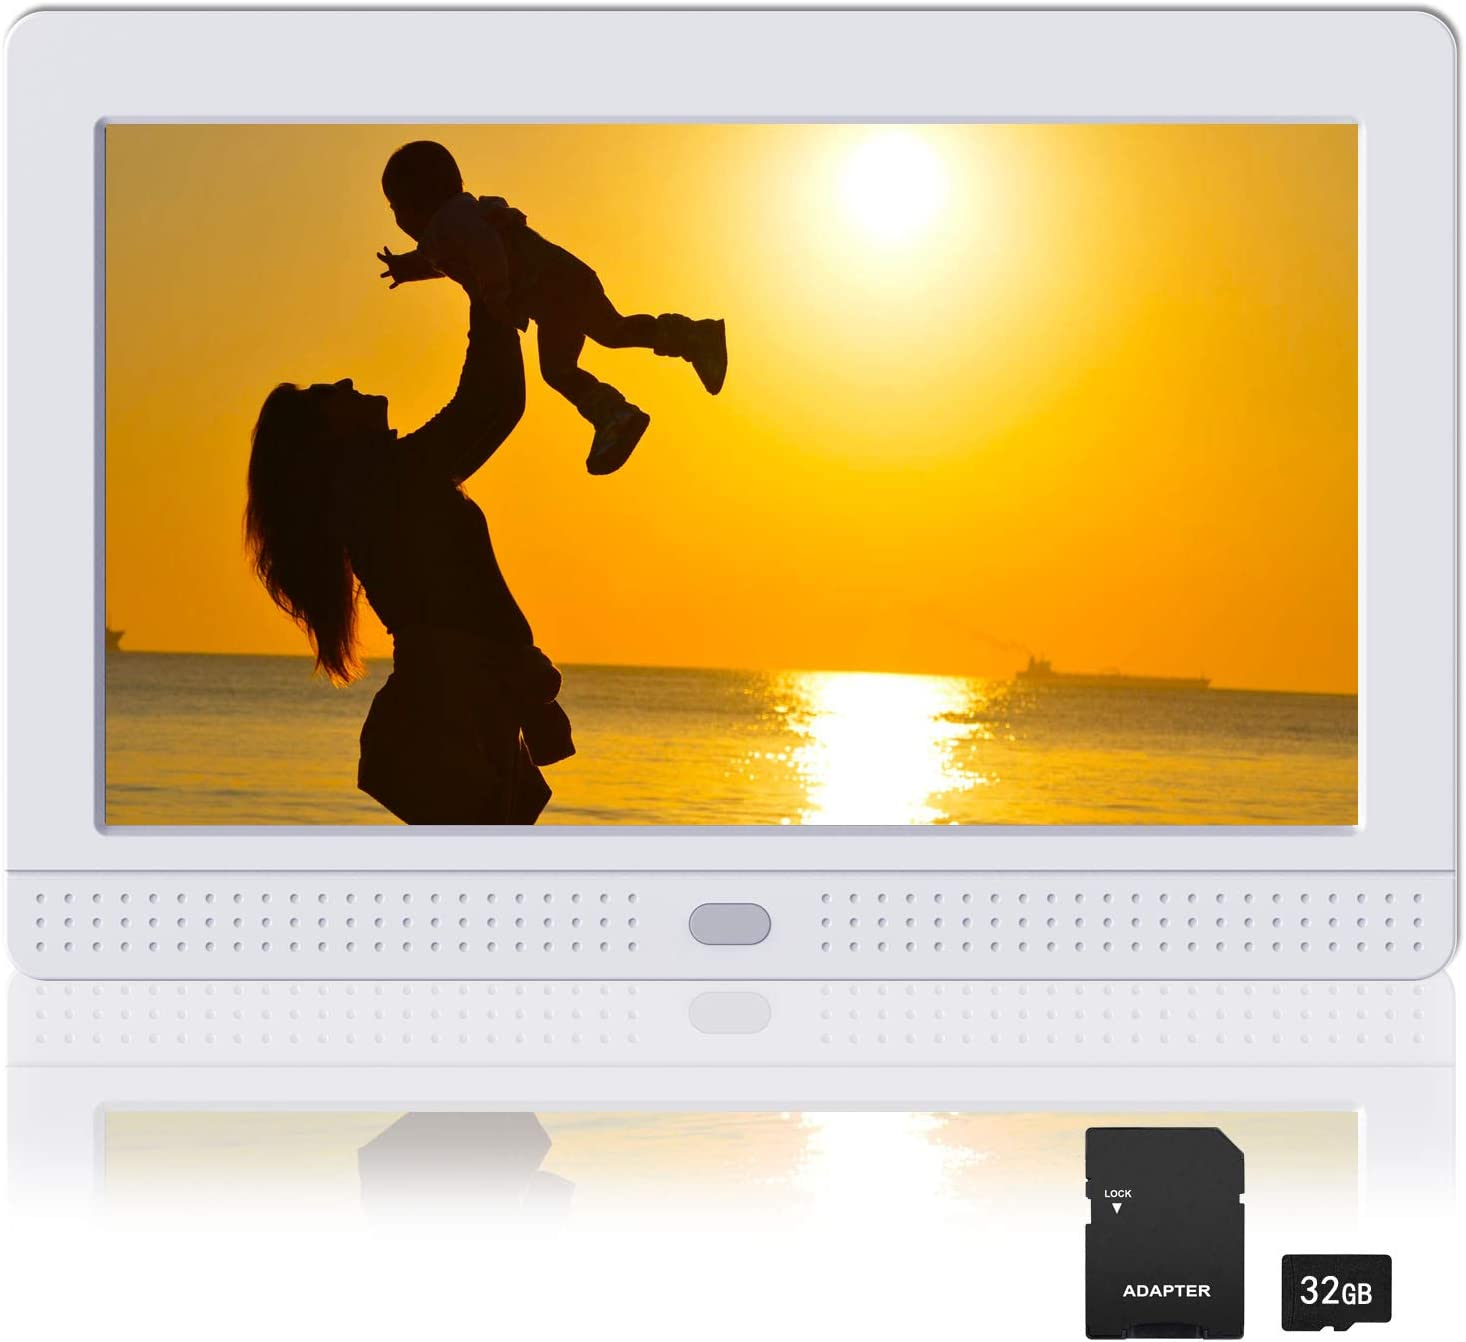 Atatat Digital Picture Frame with IPS Screen, 1080P Video, Background Music, Digital Picture Frame 1280x800 with Remote Control, Auto Rotate, Calendar, Time,Support USB and SD Card (7 Inch White)